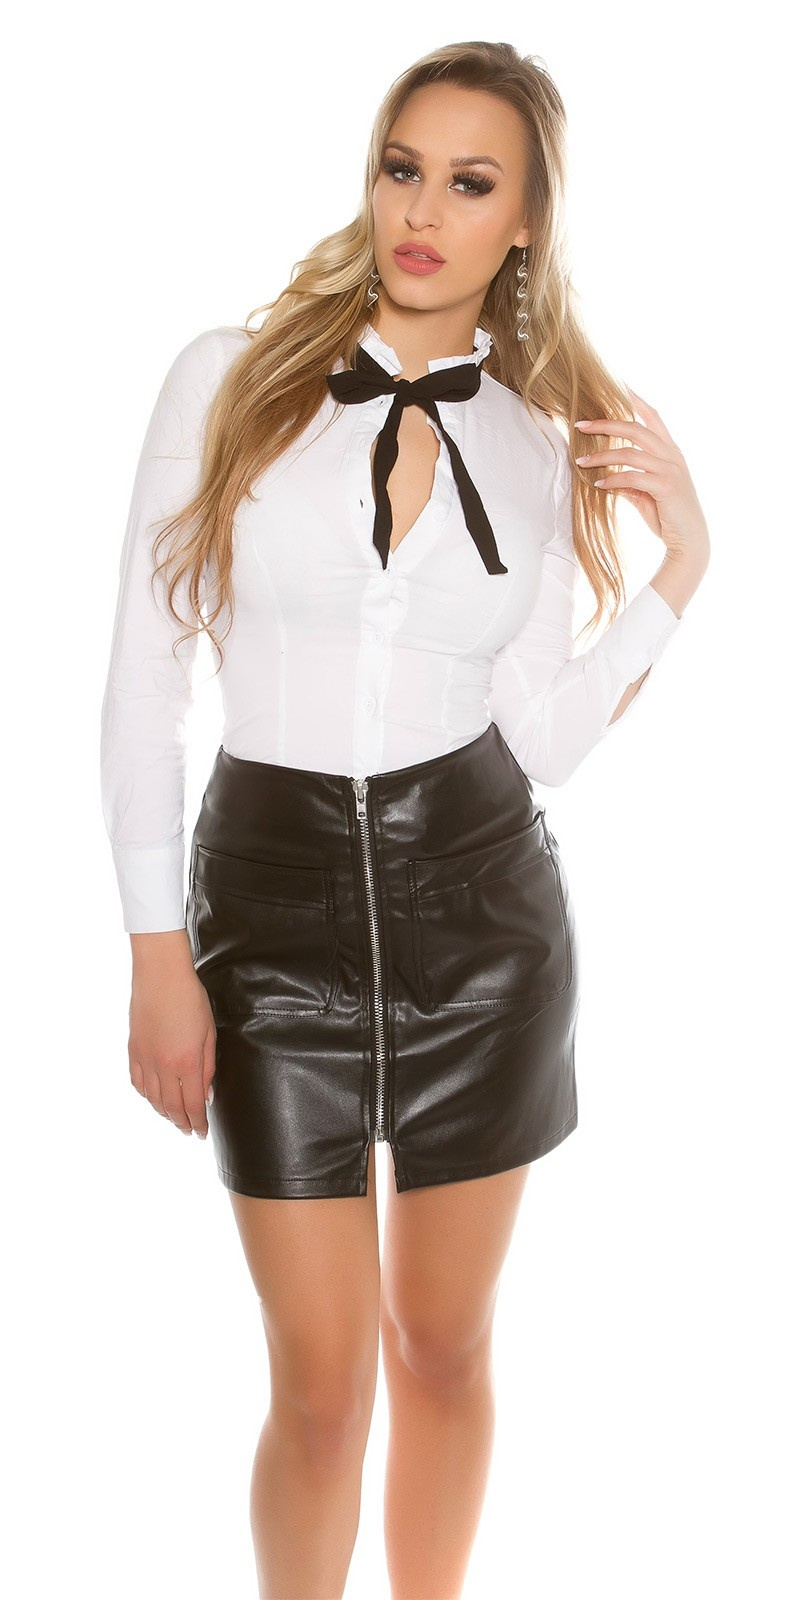 Sexy A-Line Mini Skirt Leatherlook with Zip Black